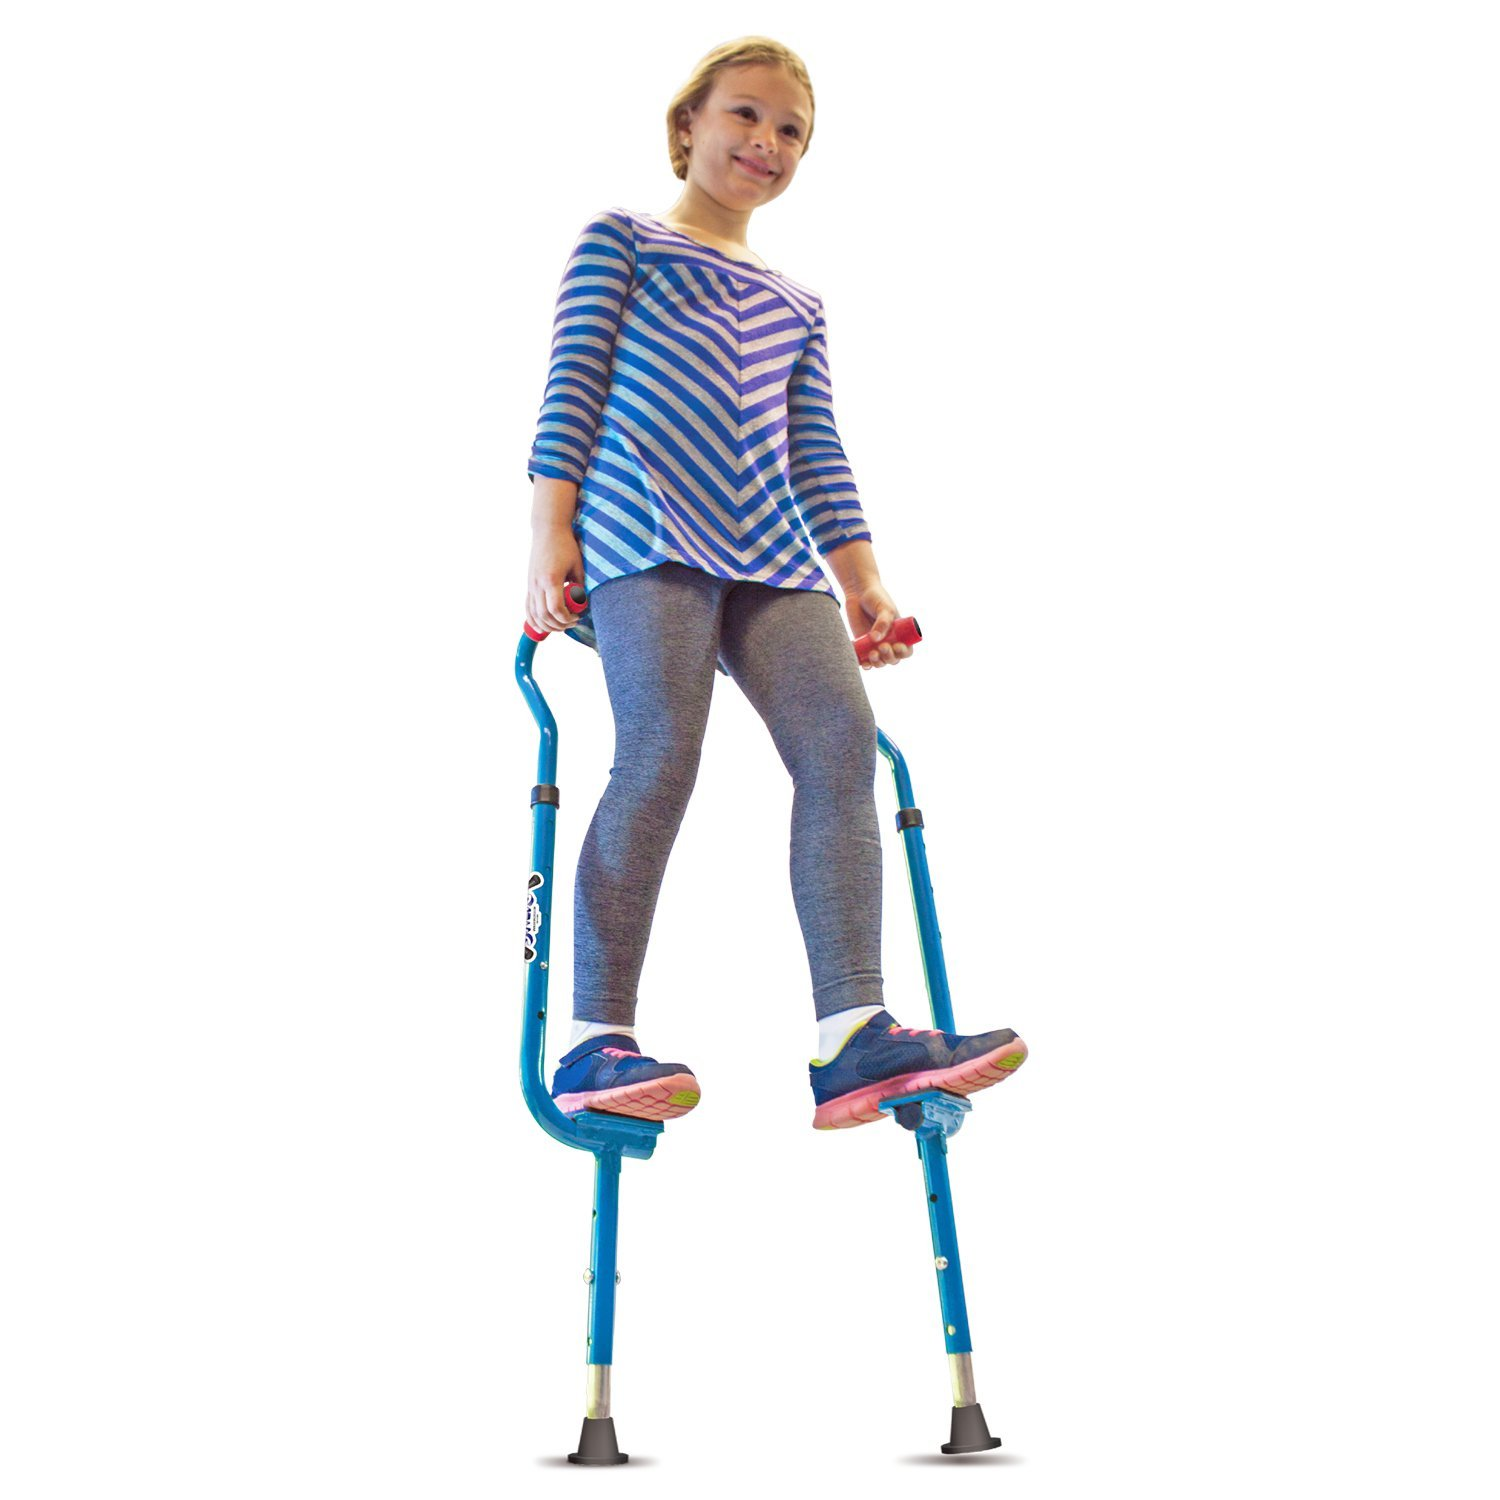 Geospace Original Walkaroo 'Wee' Balance Stilts Beginners, Little Kids (Ages 4 up) (Blue) by Geospace